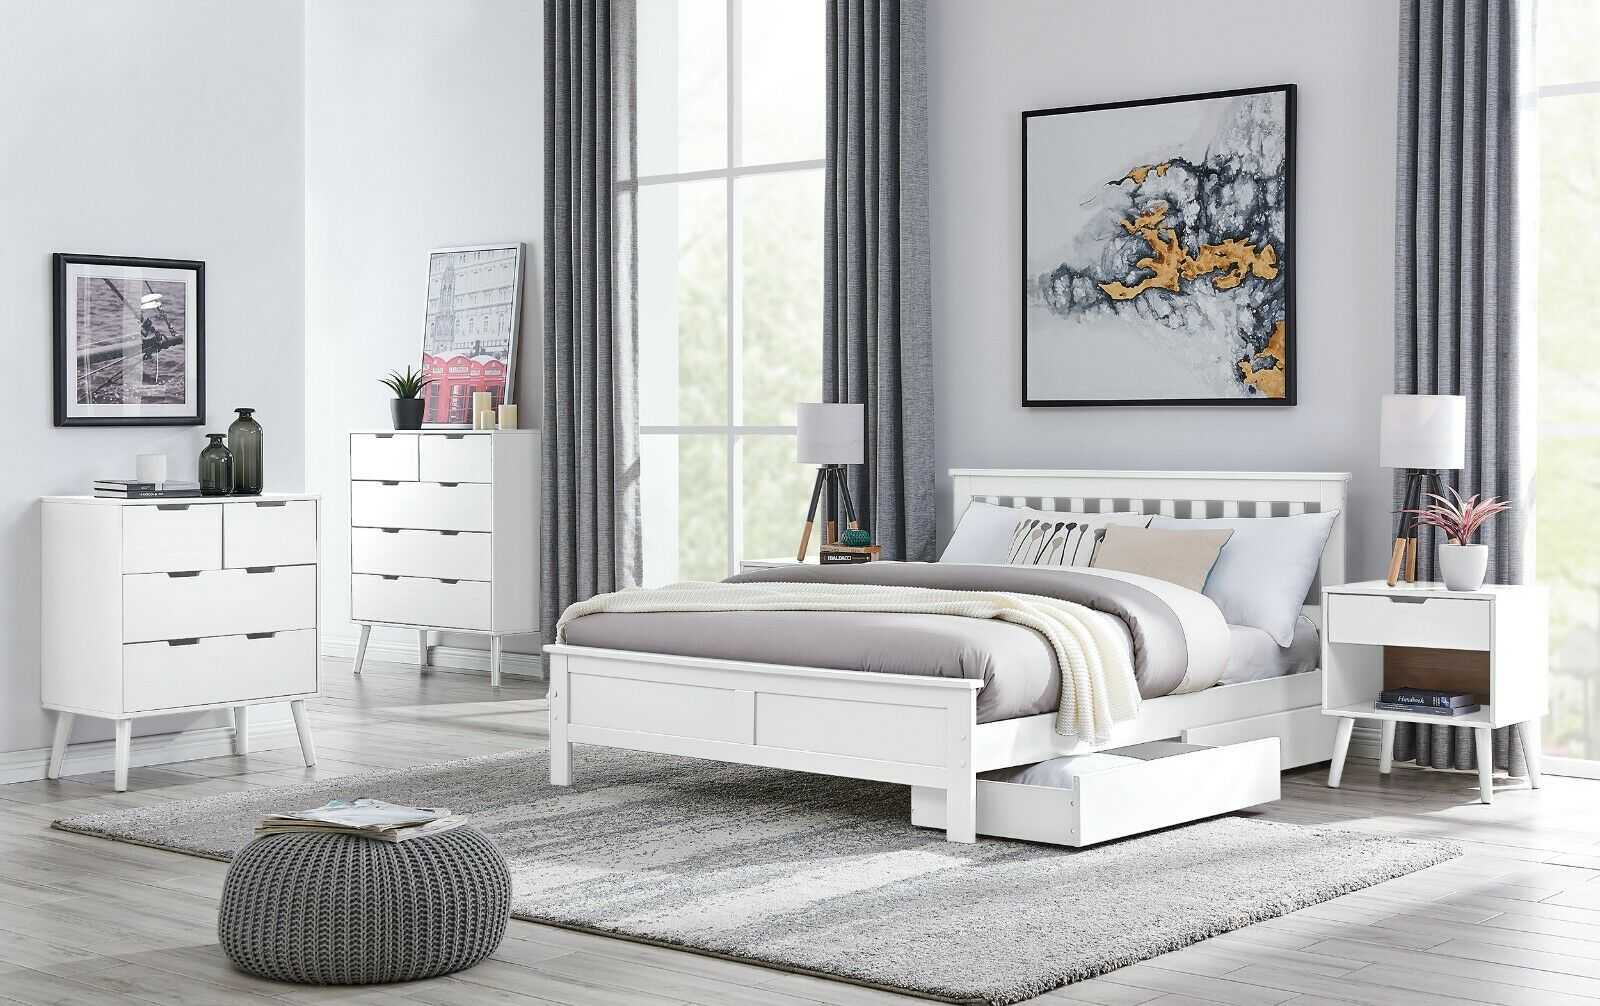 Azure Wooden Single Double King White Grey Bed Frame Storage Drawers Mattress Ebay